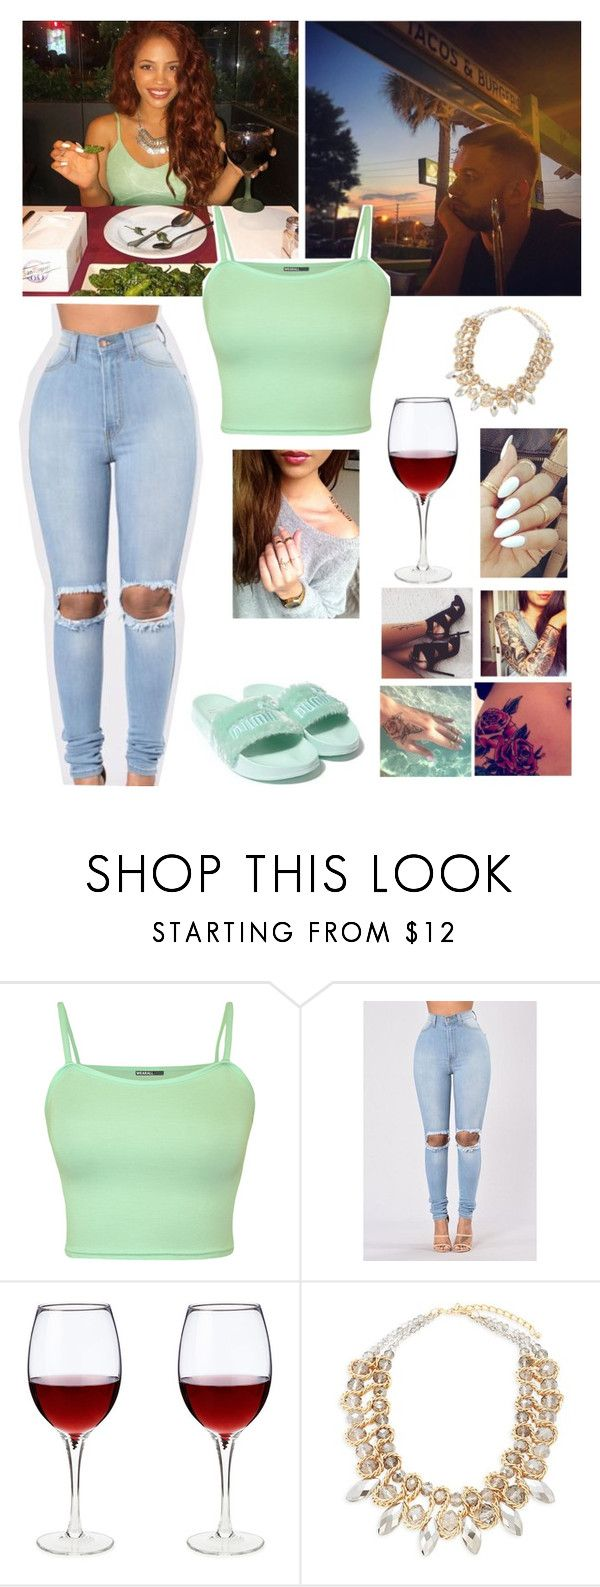 """""""● Shella ● The boyfriend that I want... *Description*"""" by queenofwrestling ❤ liked on Polyvore featuring Brooks, WearAll and Saks Fifth Avenue"""